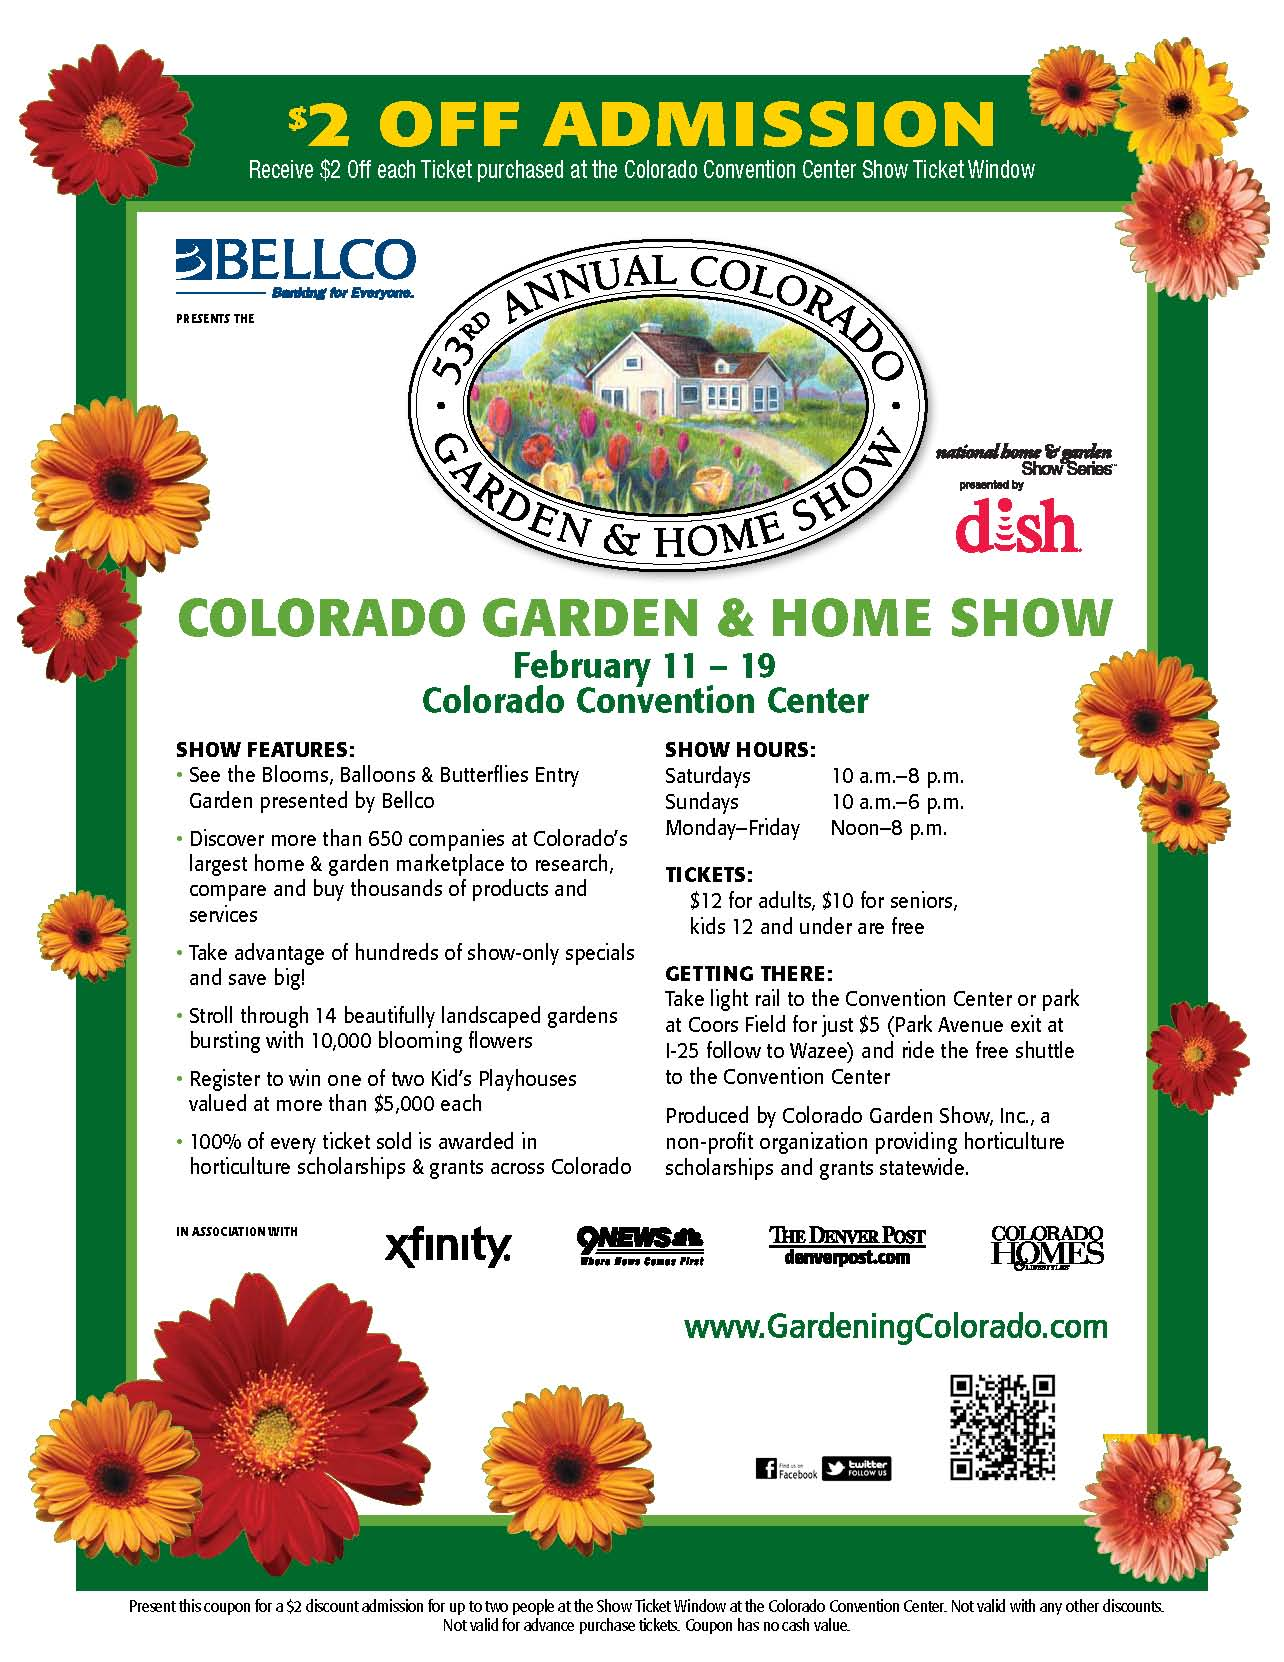 2 Off Admission At The 2012 Colorado Garden Home Show